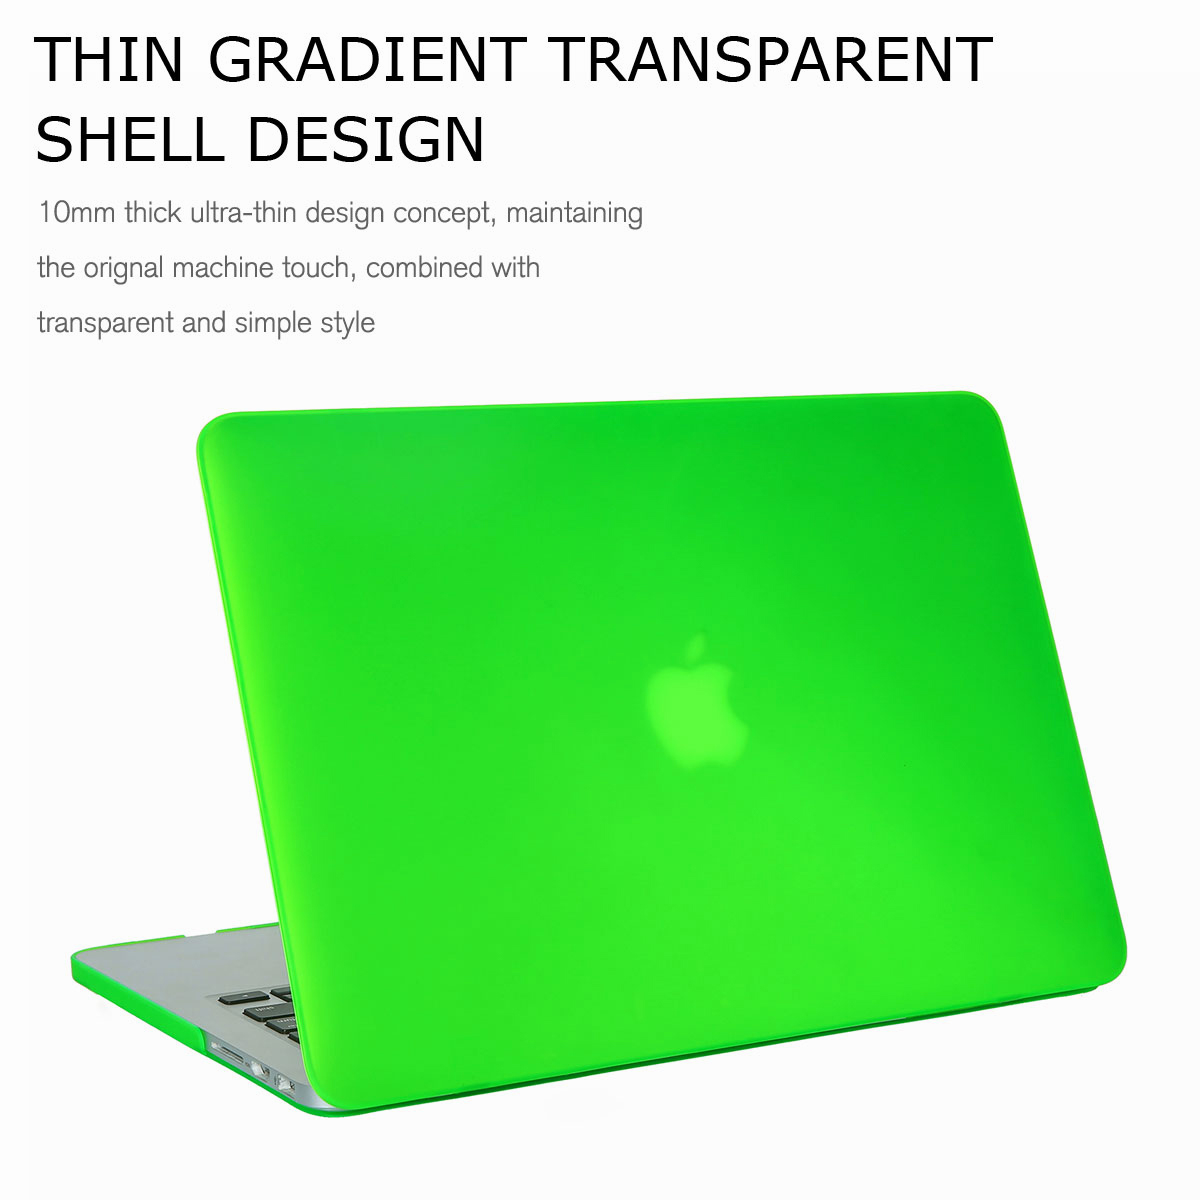 Matte-Rubberized-Hard-Case-Cover-Shell-For-Macbook-Pro-Retina-12-039-039-13-039-039-15-Inch thumbnail 21